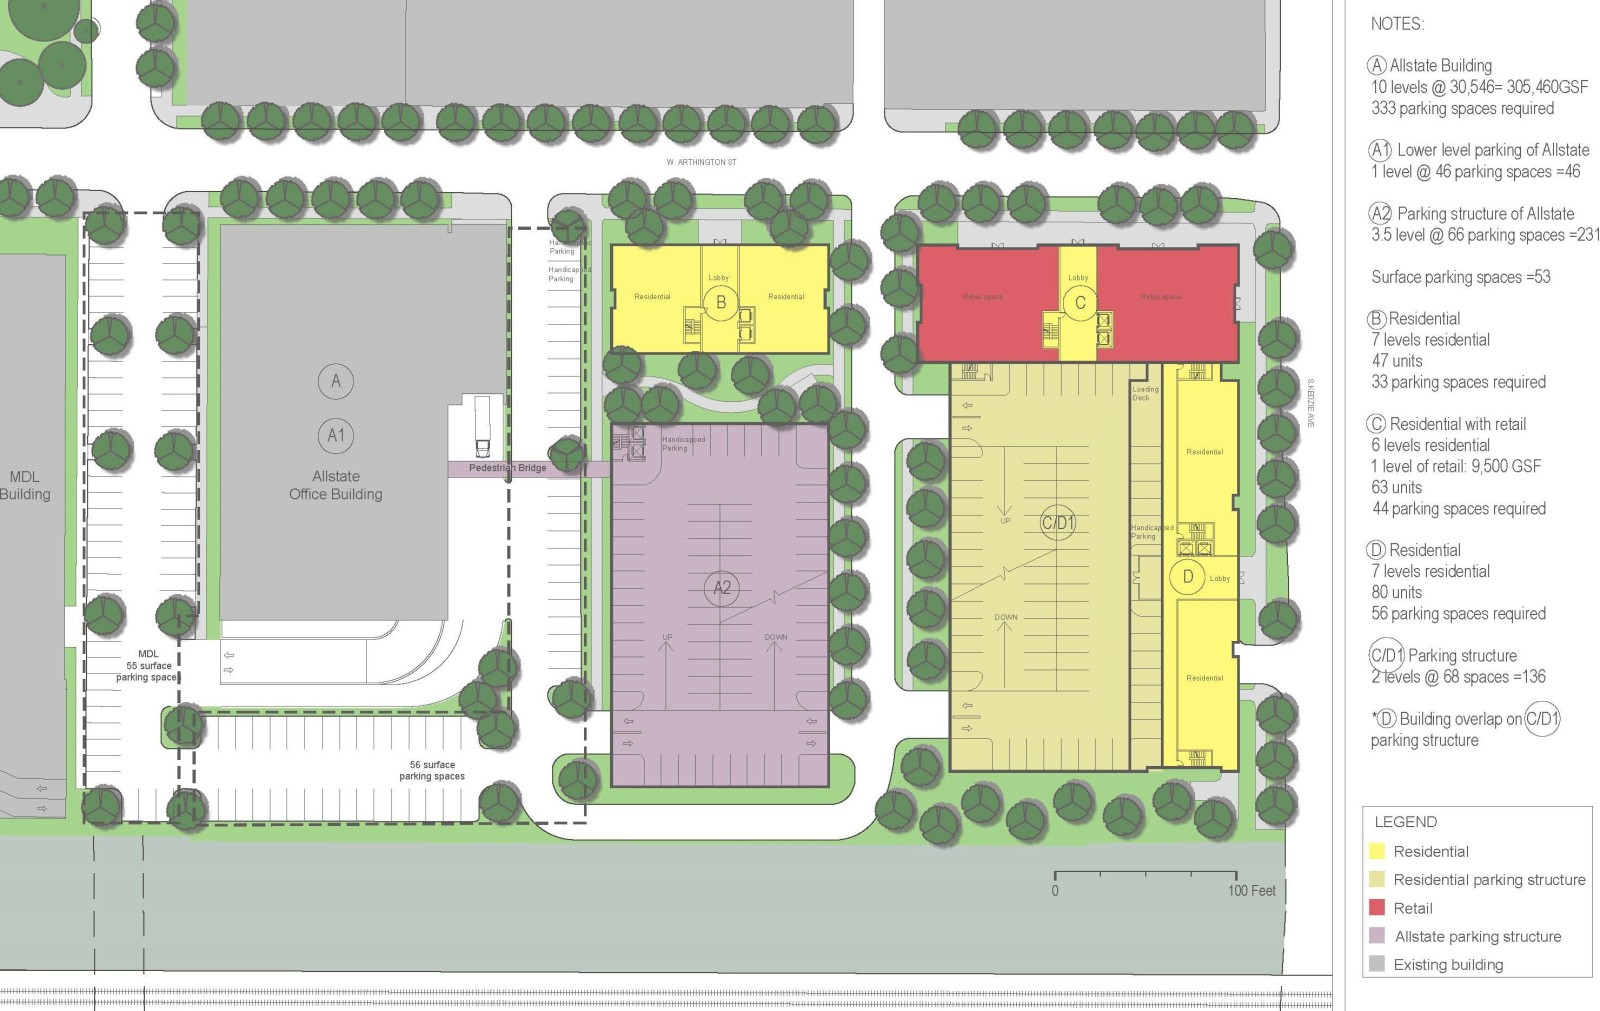 googles case study plan Googleplex: a new campus community 5 phasing google's process was linear: decide on a master plan which organized the entire development of the campus, and from there, focus on and renovate.